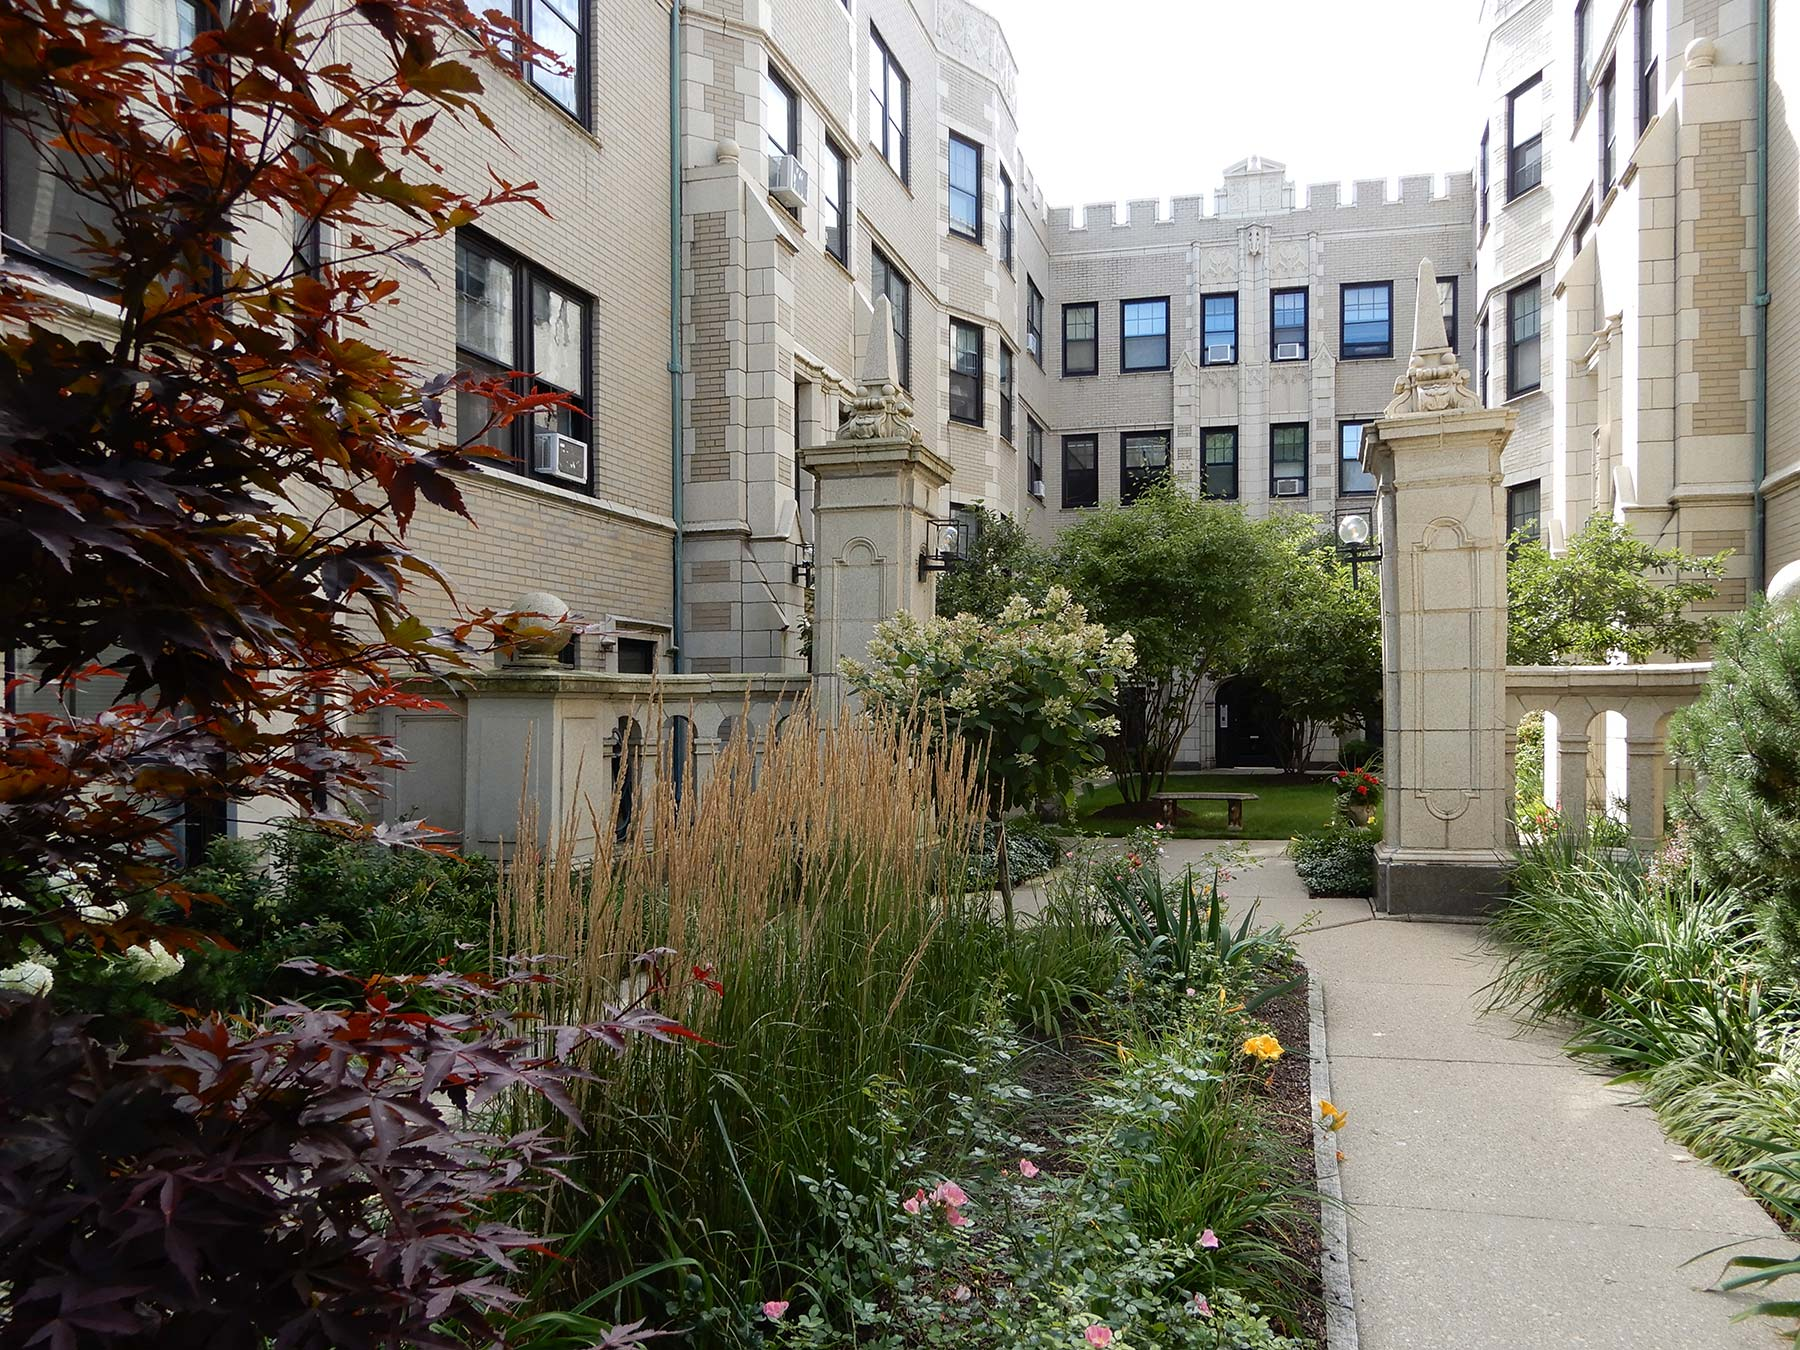 Nyden's courtyard building at 544-550 Sheridan Road in Evanston. Photo by Julia Bachrach.